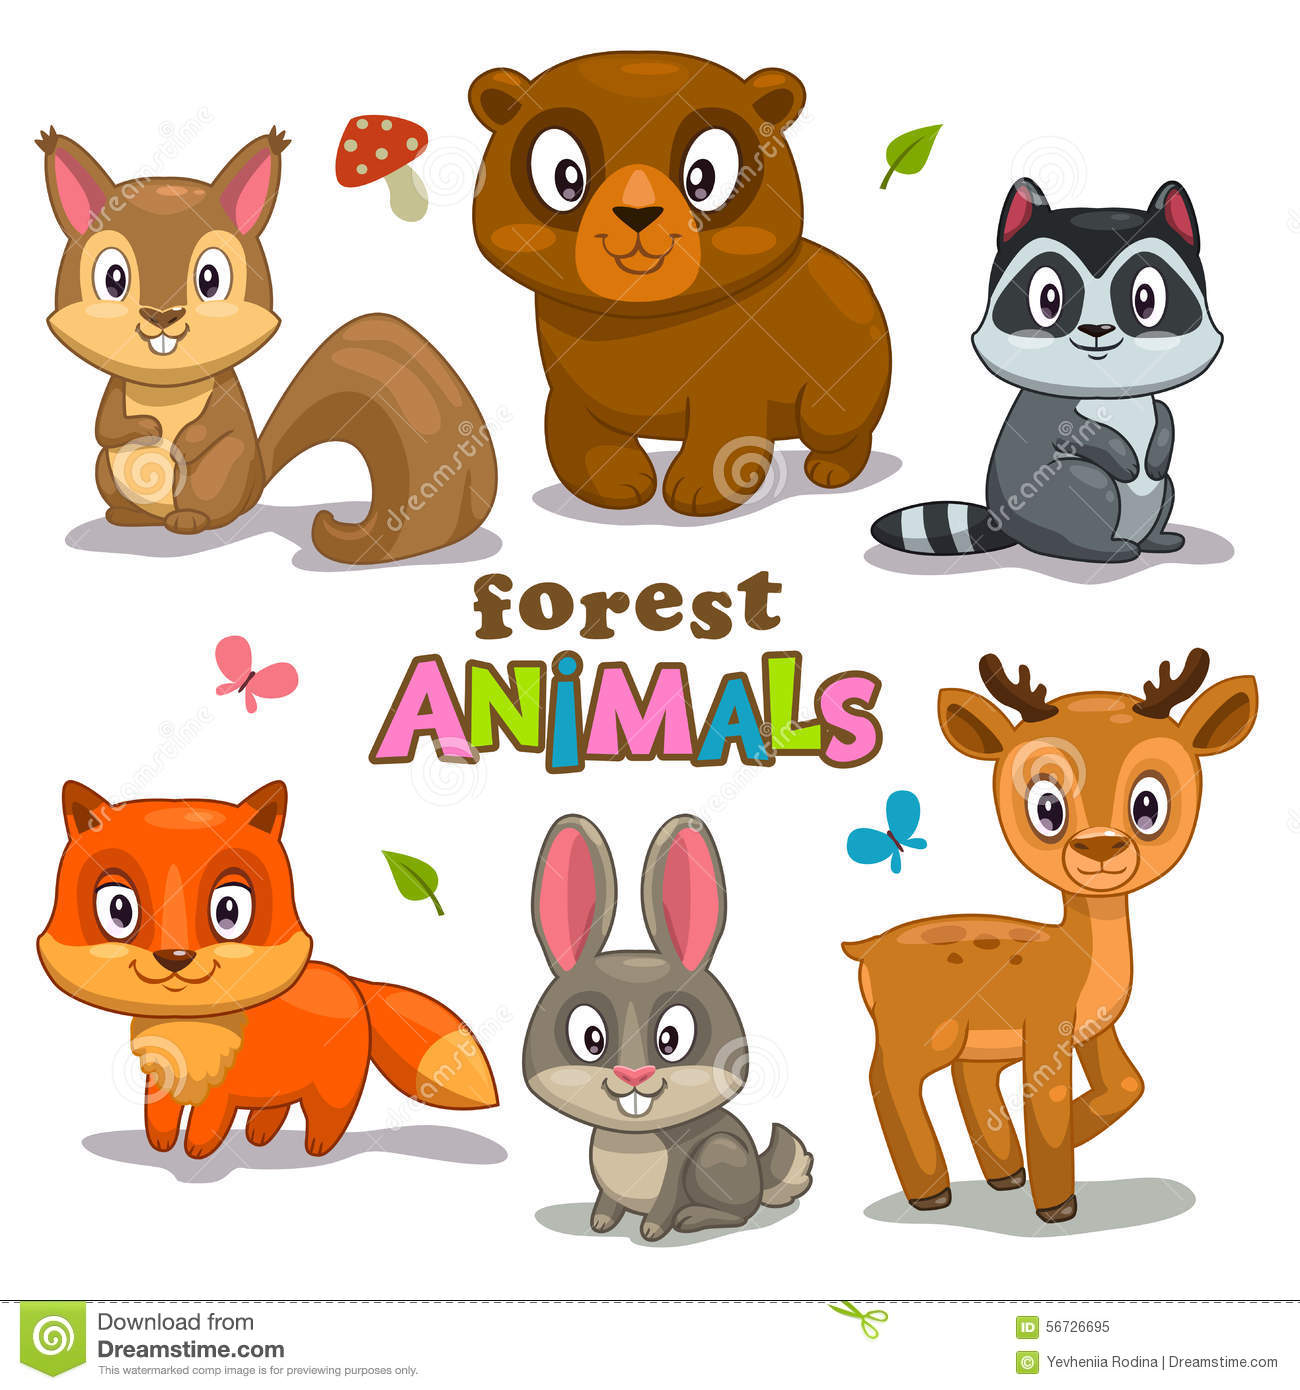 Animaux mignons de for t de dessin anim illustration stock image 56726695 - Dessin de foret ...